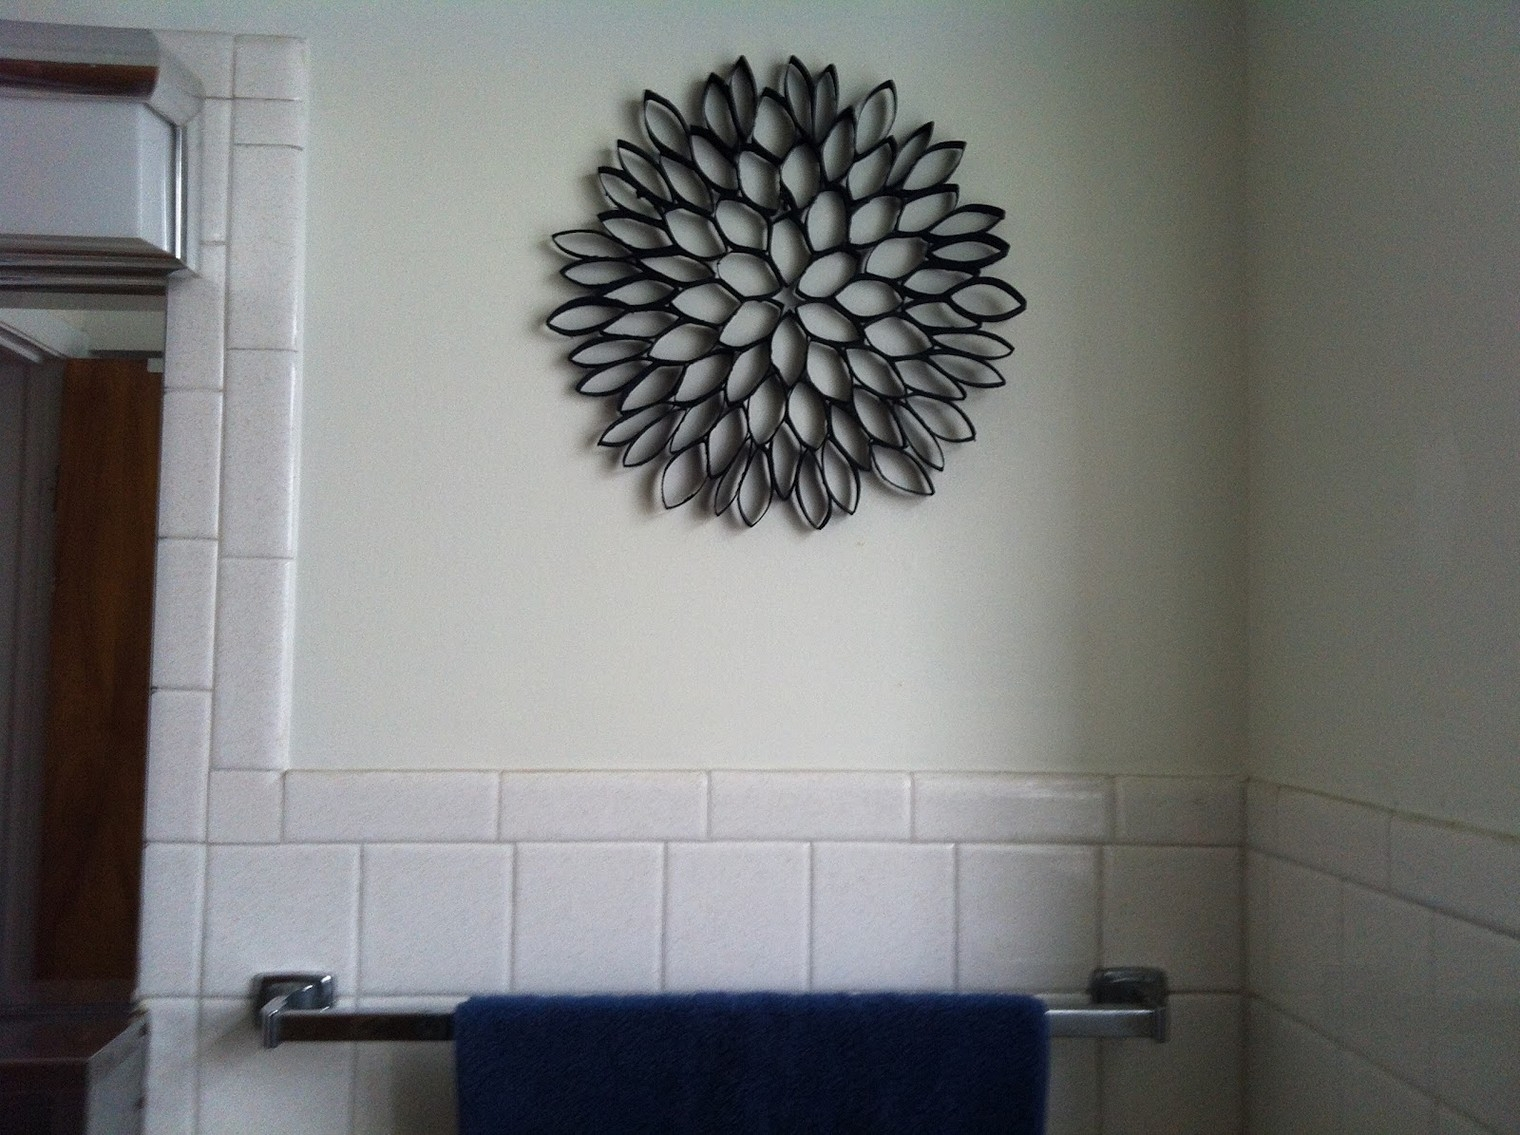 Toilet Paper Roll Art For Wall Decor, Paper Wall Art - The Beyer within Toilet Paper Roll Wall Art (Image 9 of 20)